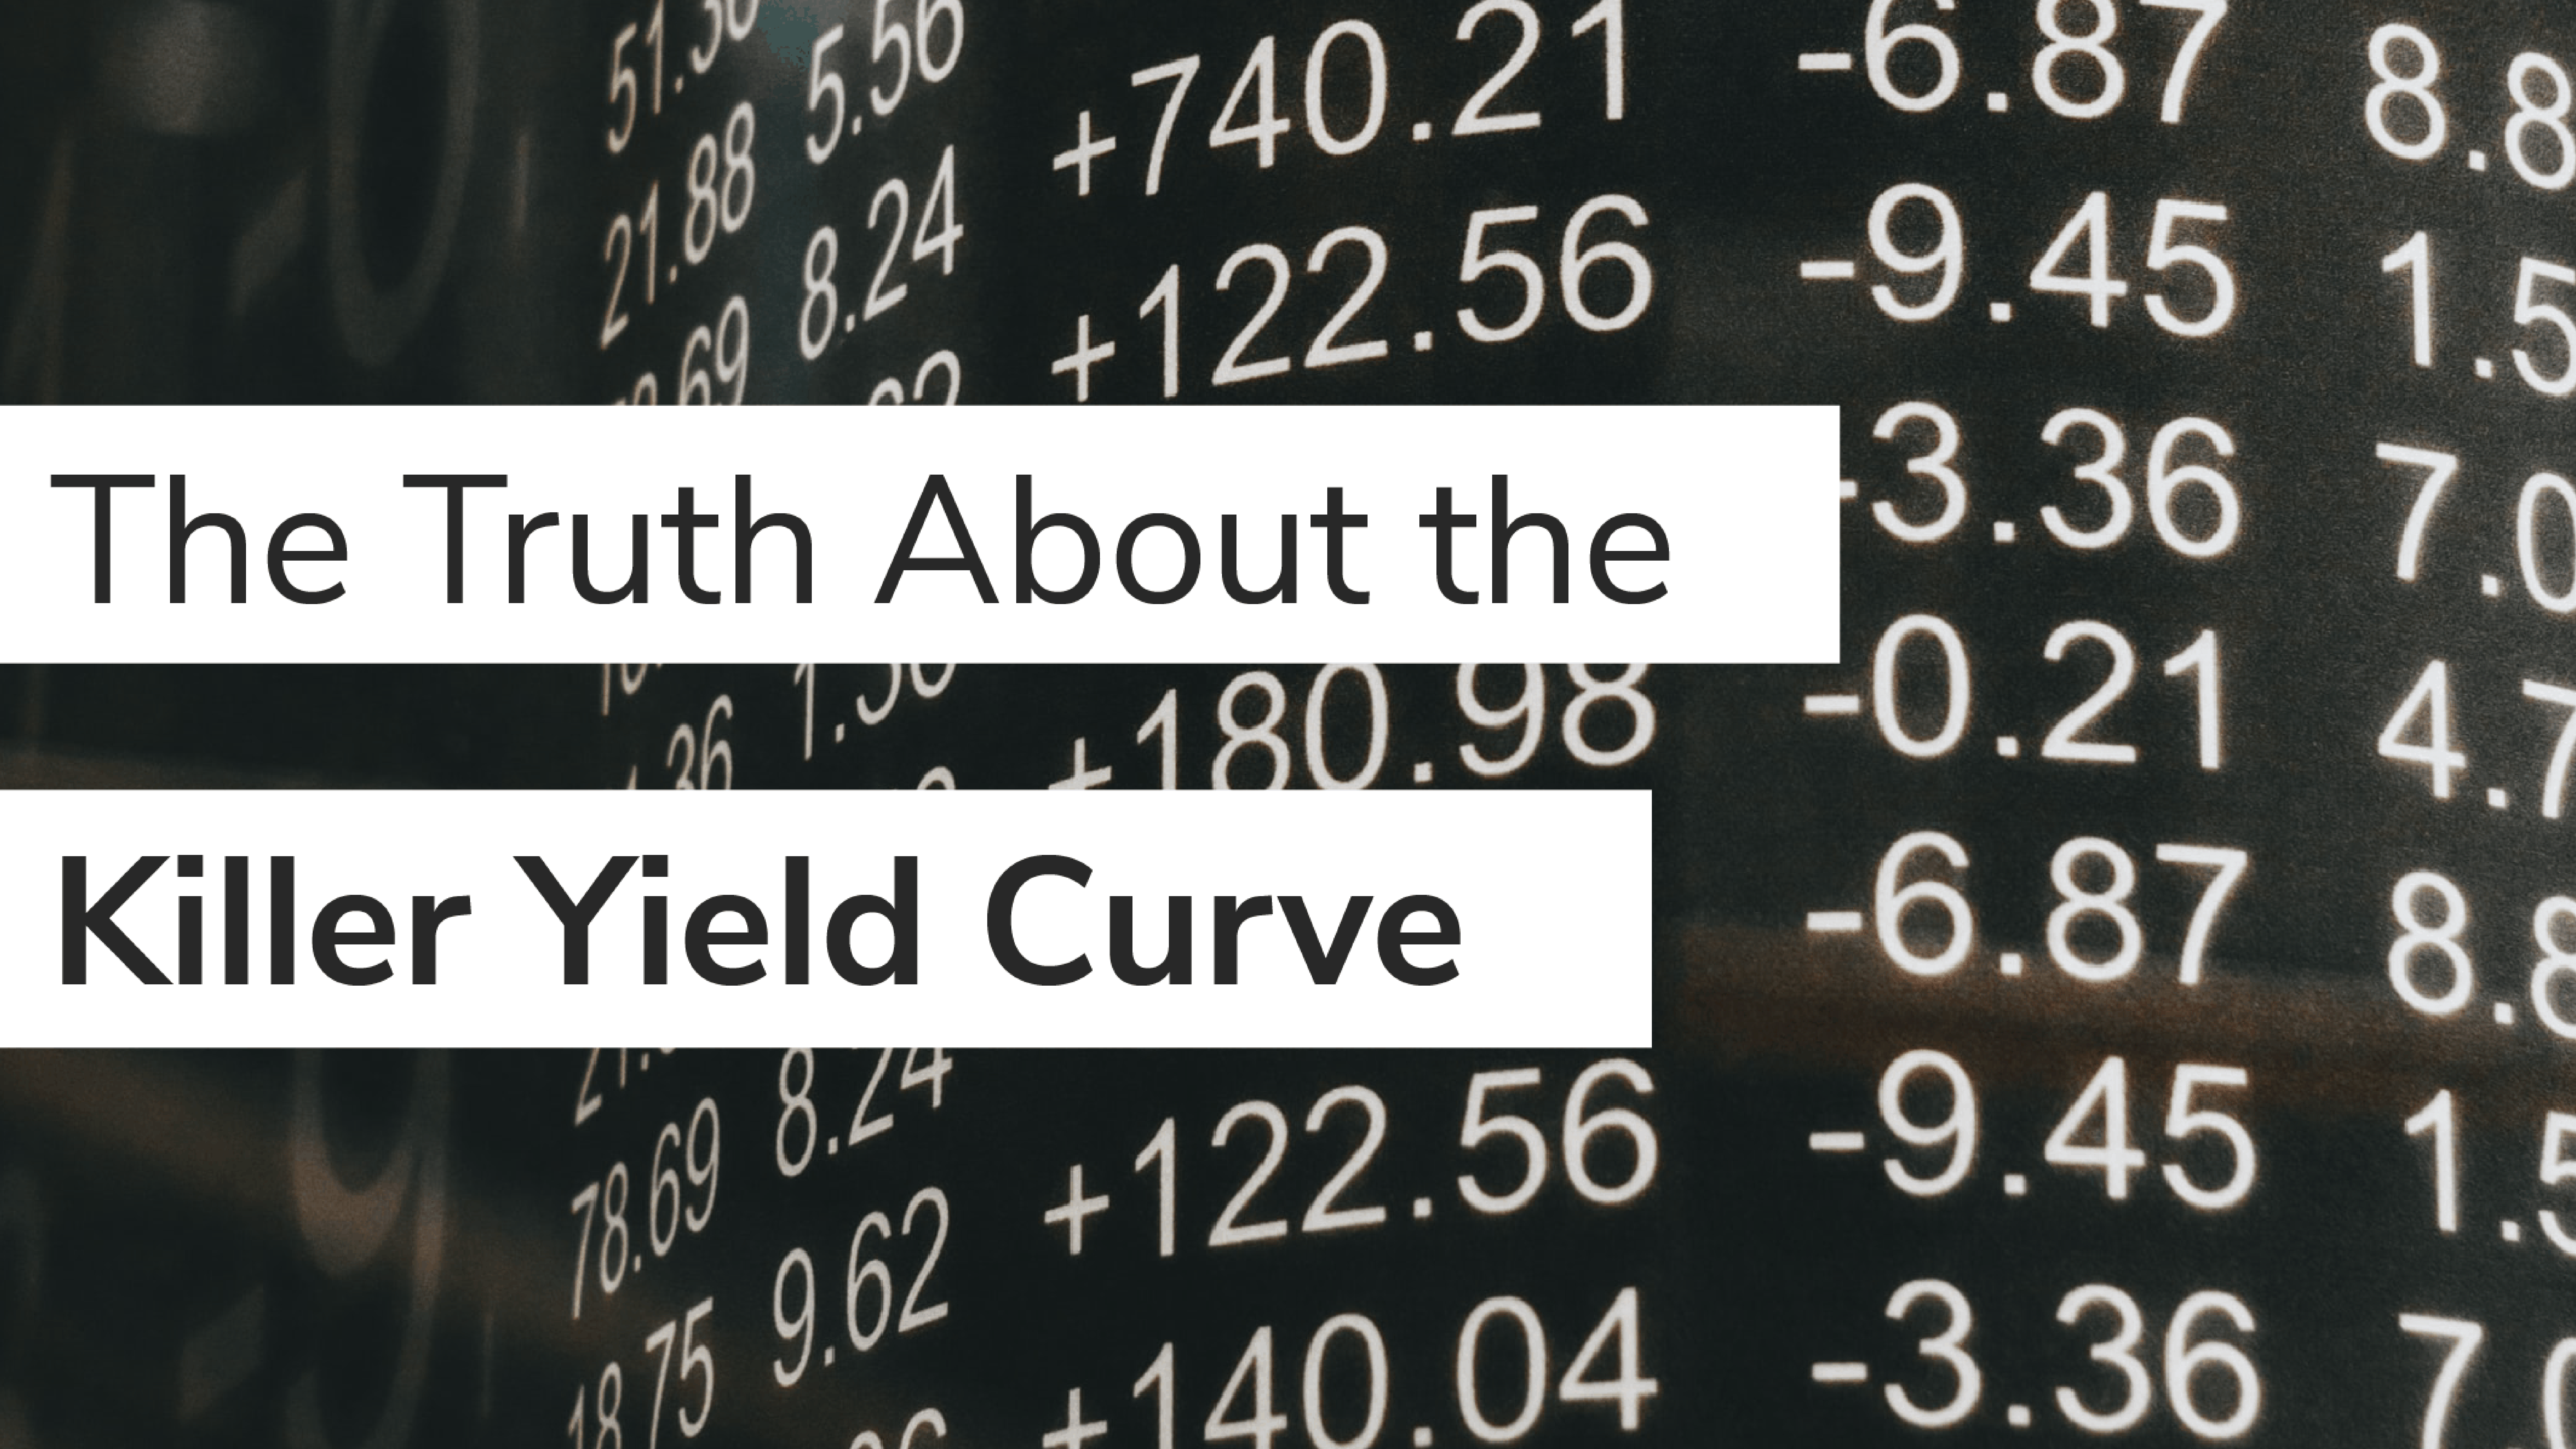 The Truth About the Killer Yield Curve